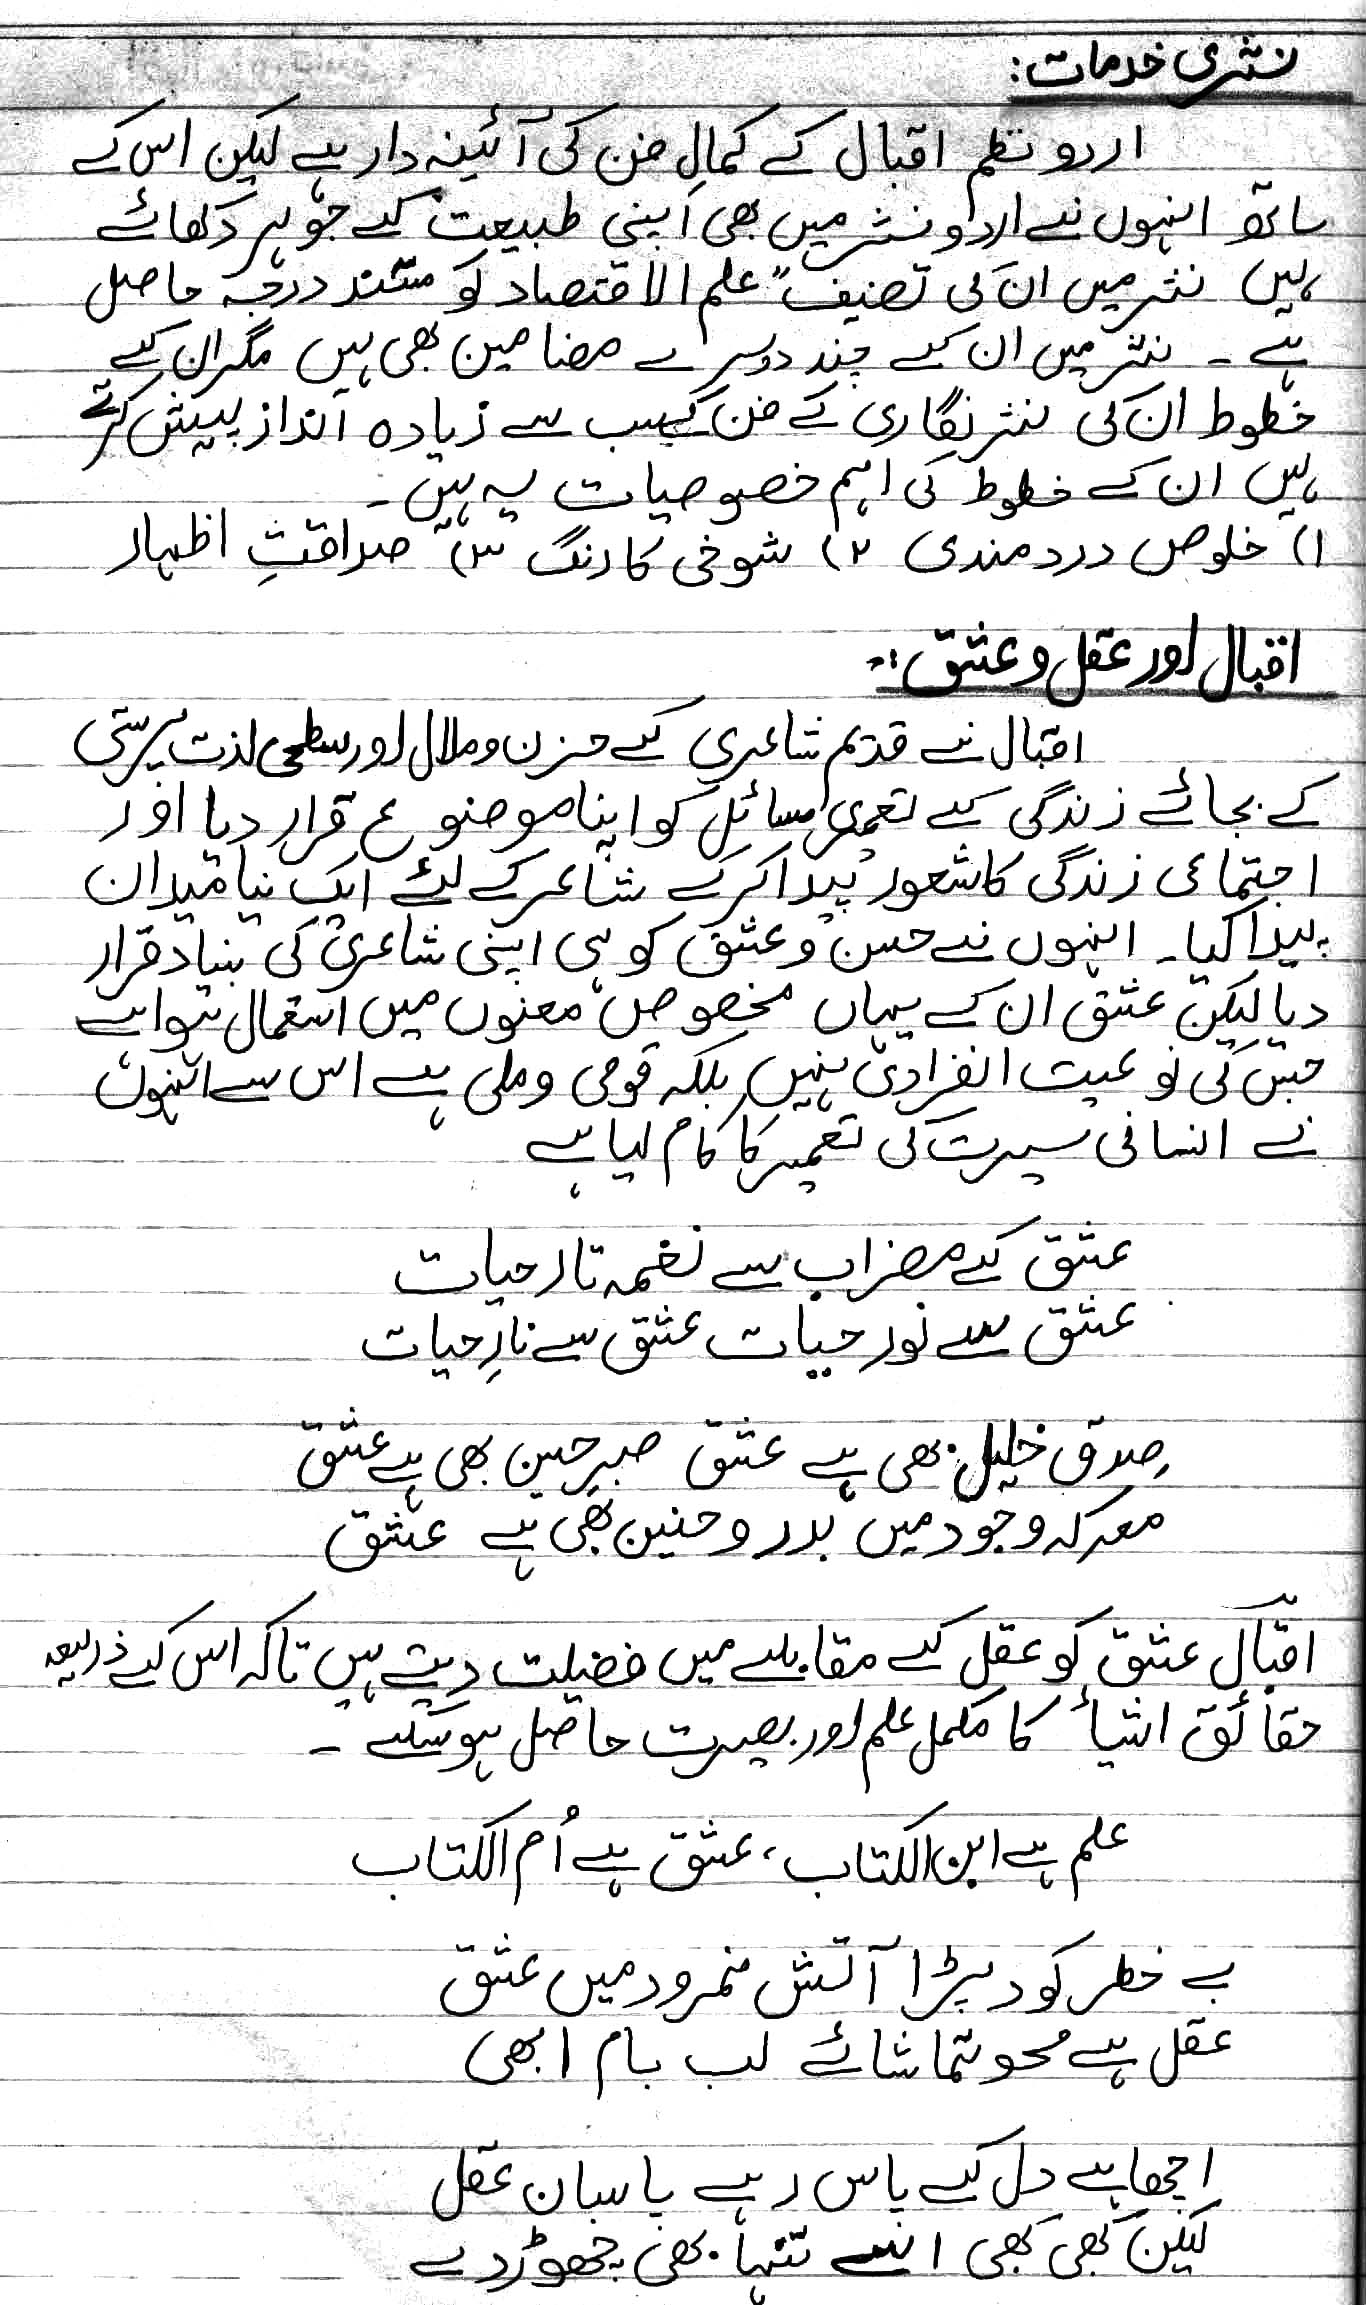 005 Urdu Essay Allama Iqbal Jpg Dreaded On In For Class 10 With Poetry Ka Shaheen Headings And Full